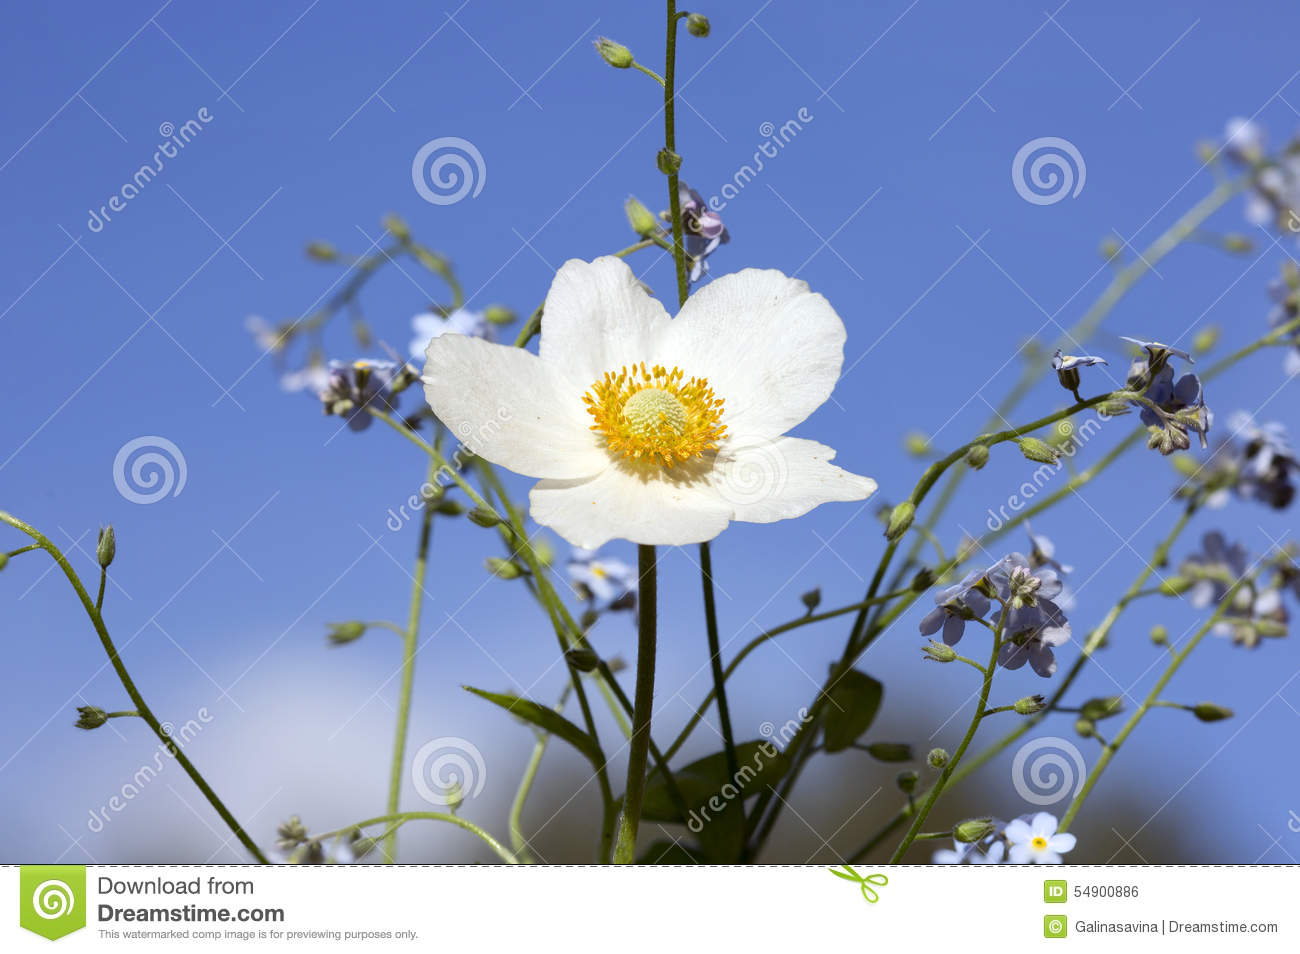 Flower Anemone Stock Photo Image Of White Spring Plant 54900886